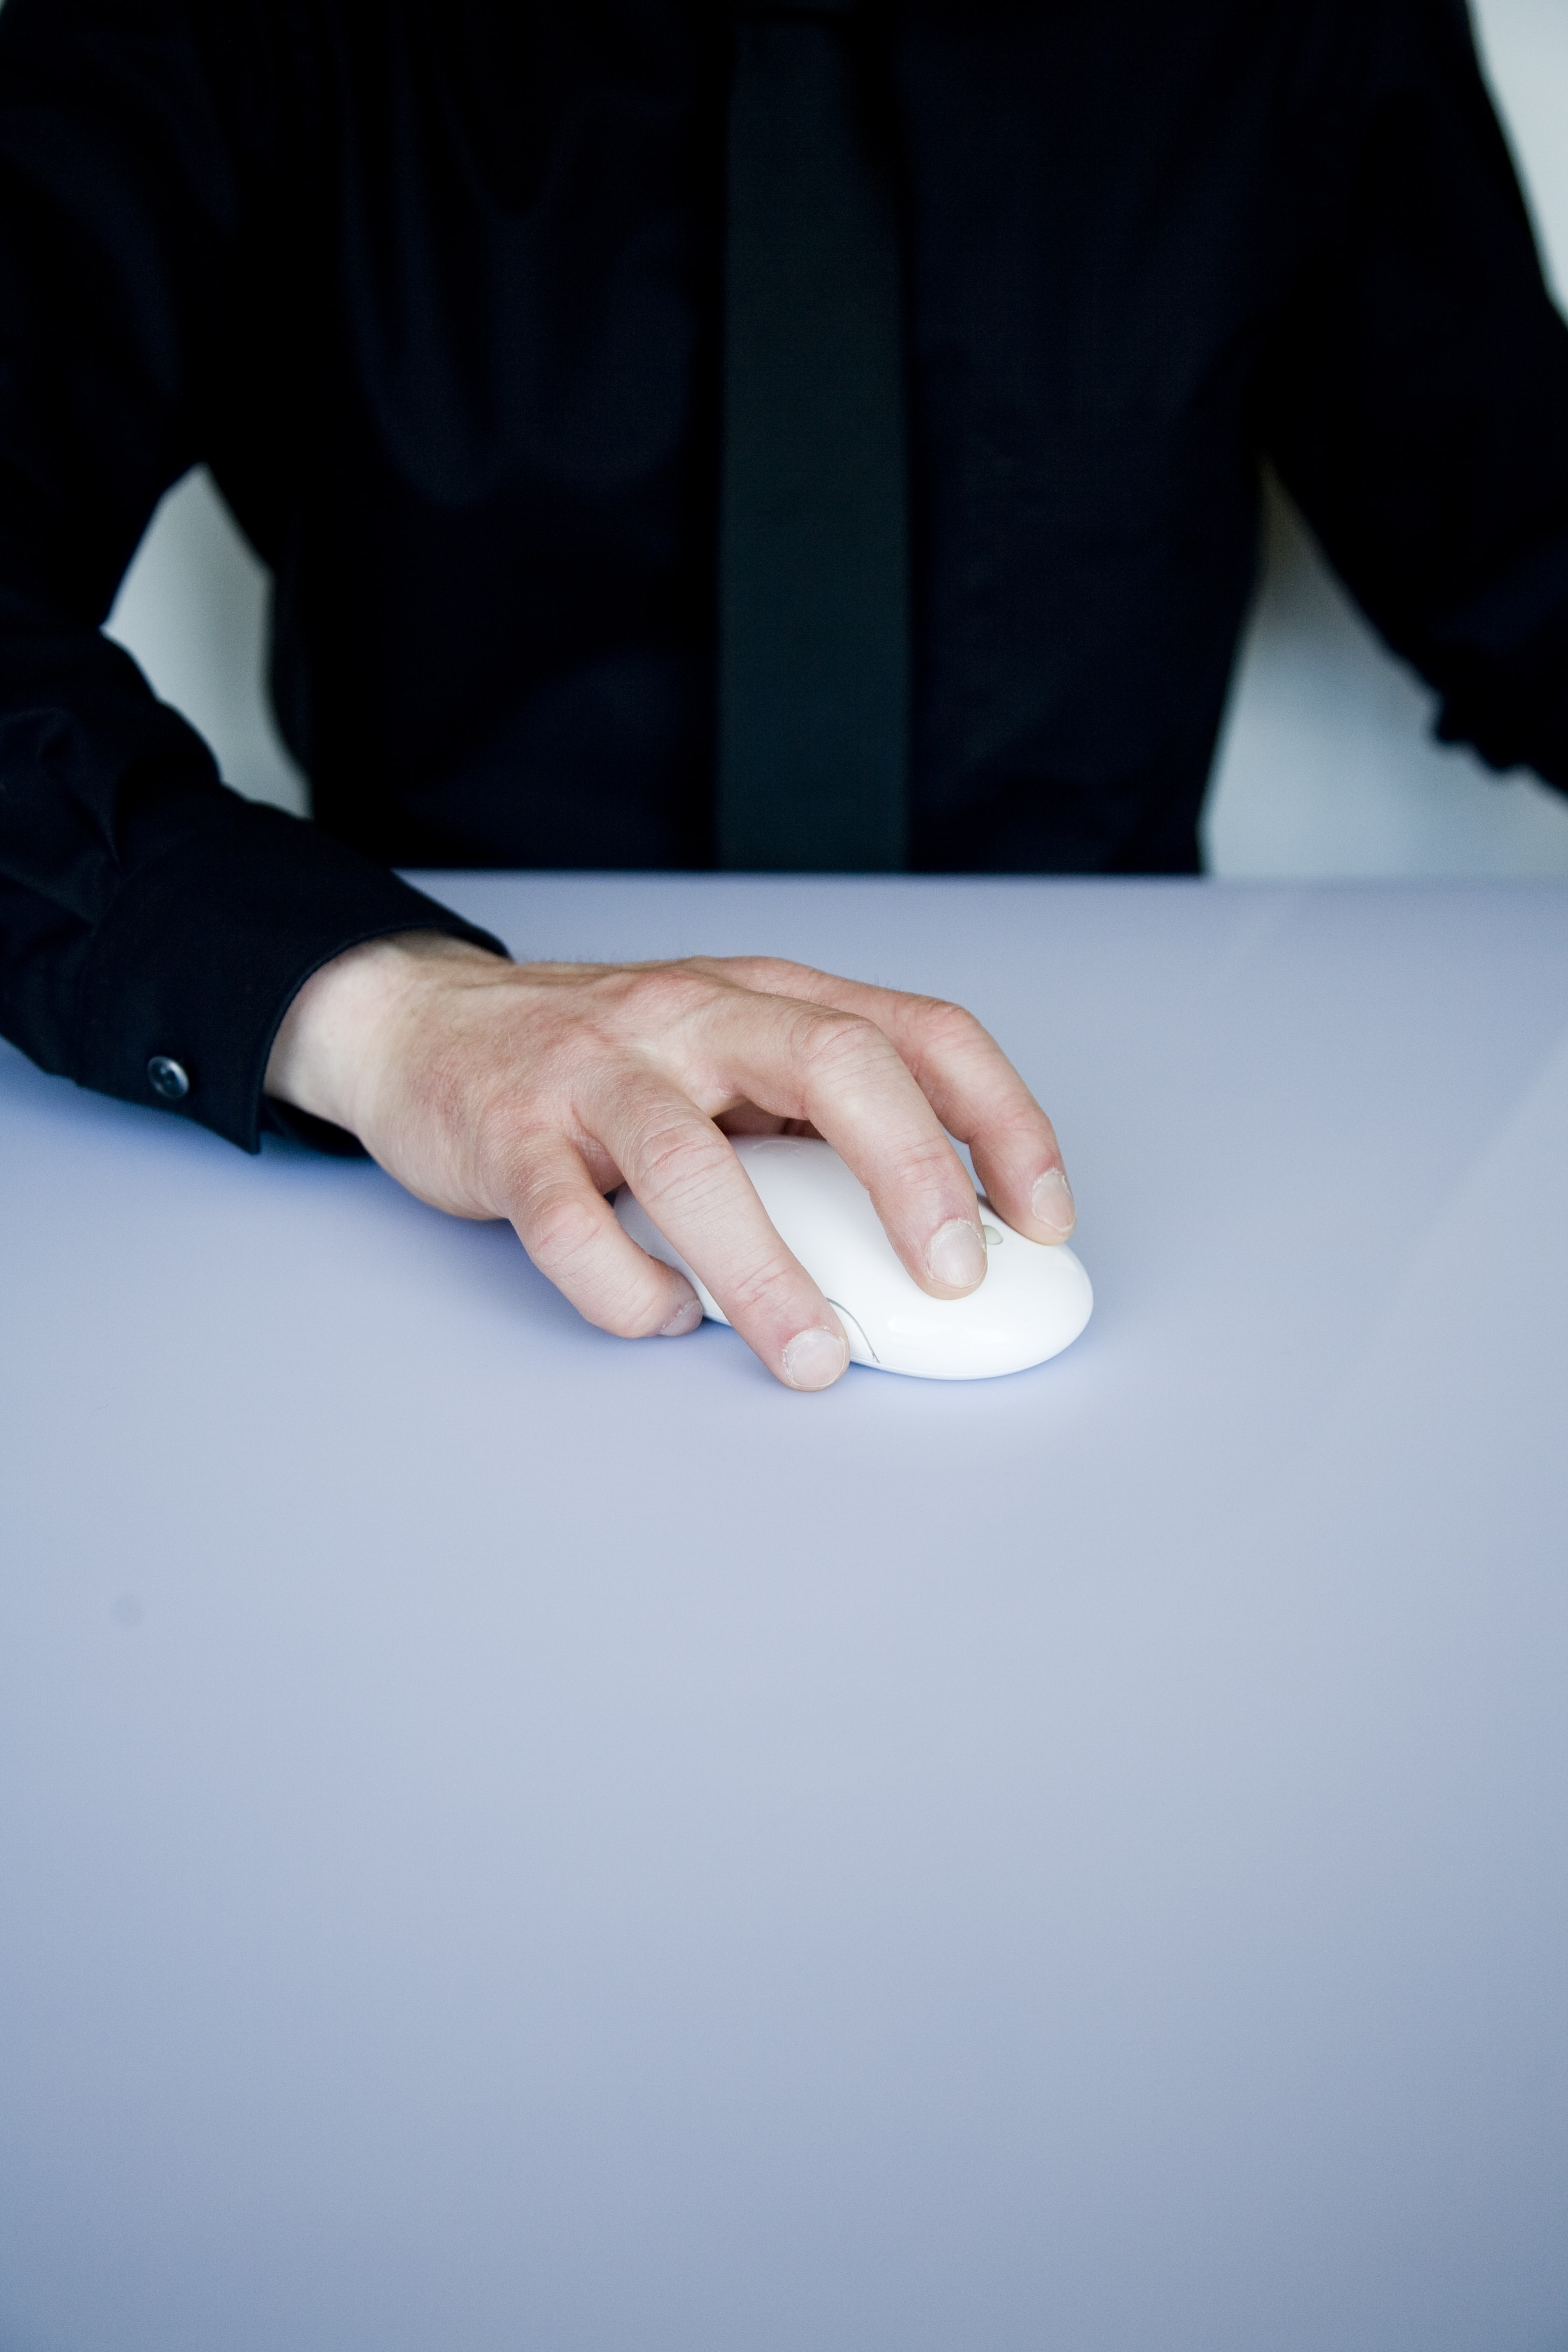 person holding white cordless computer mouse